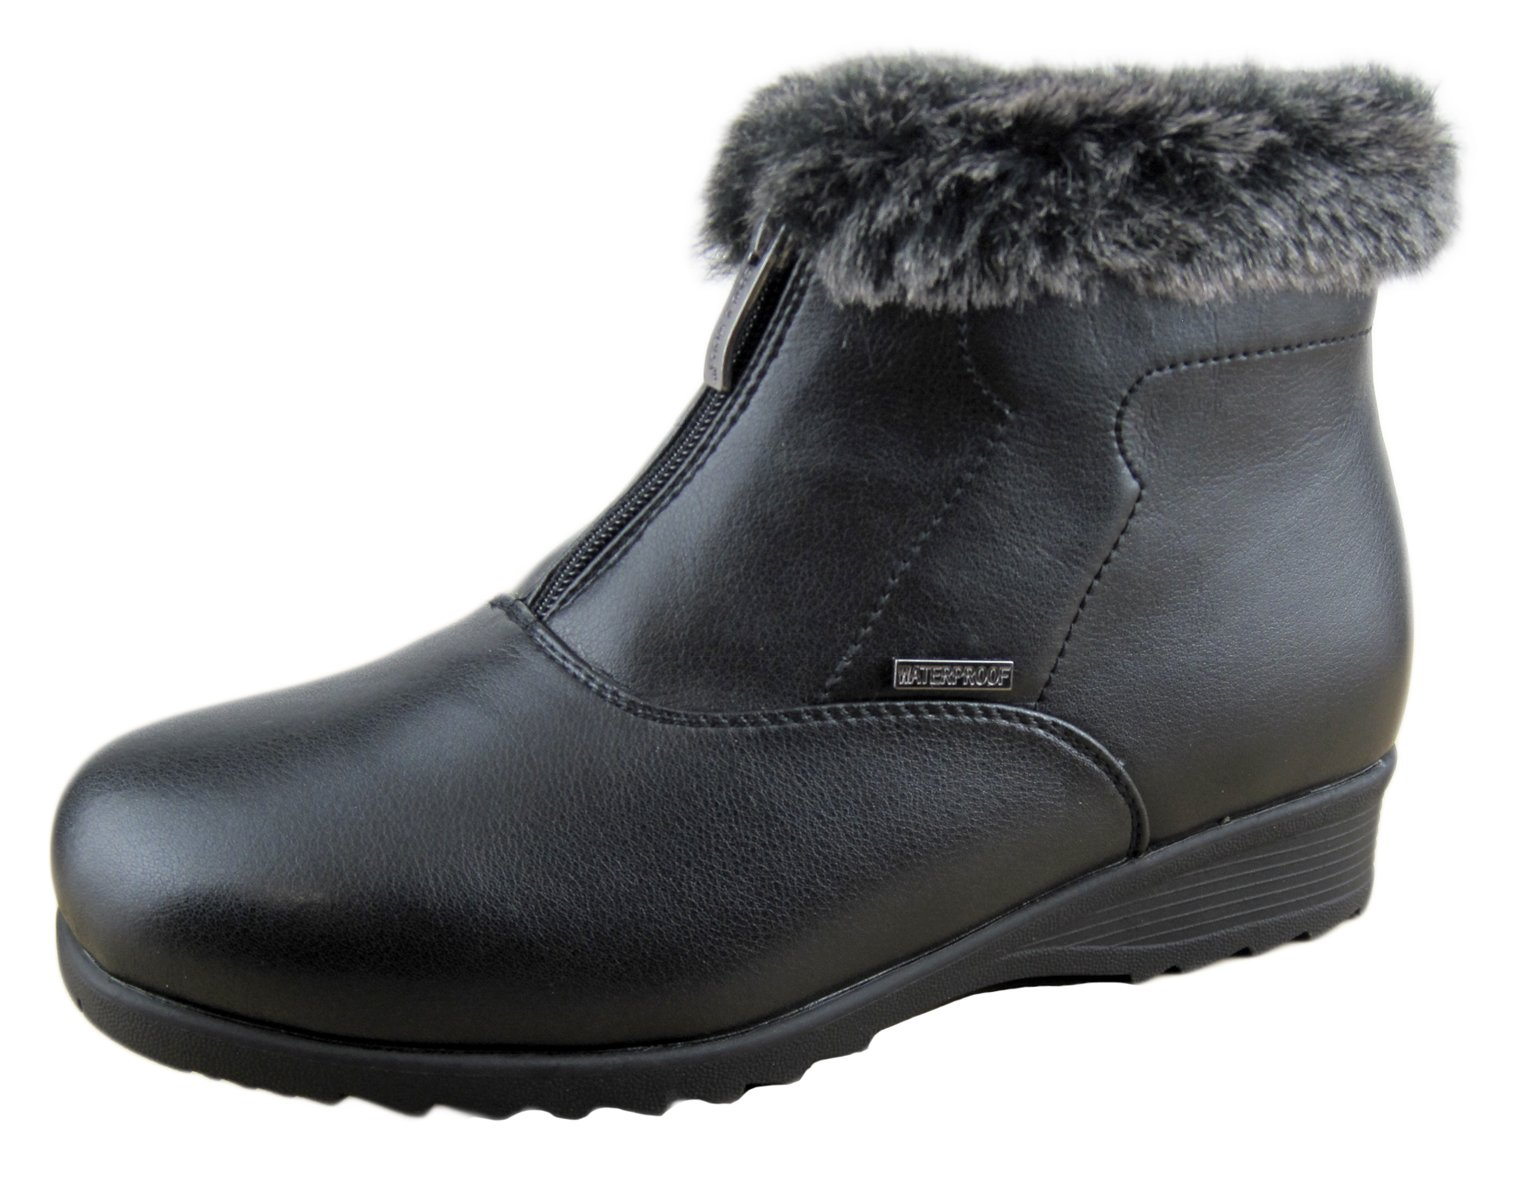 Comfy Moda Women's Winter Snow Boots London (10, Black)